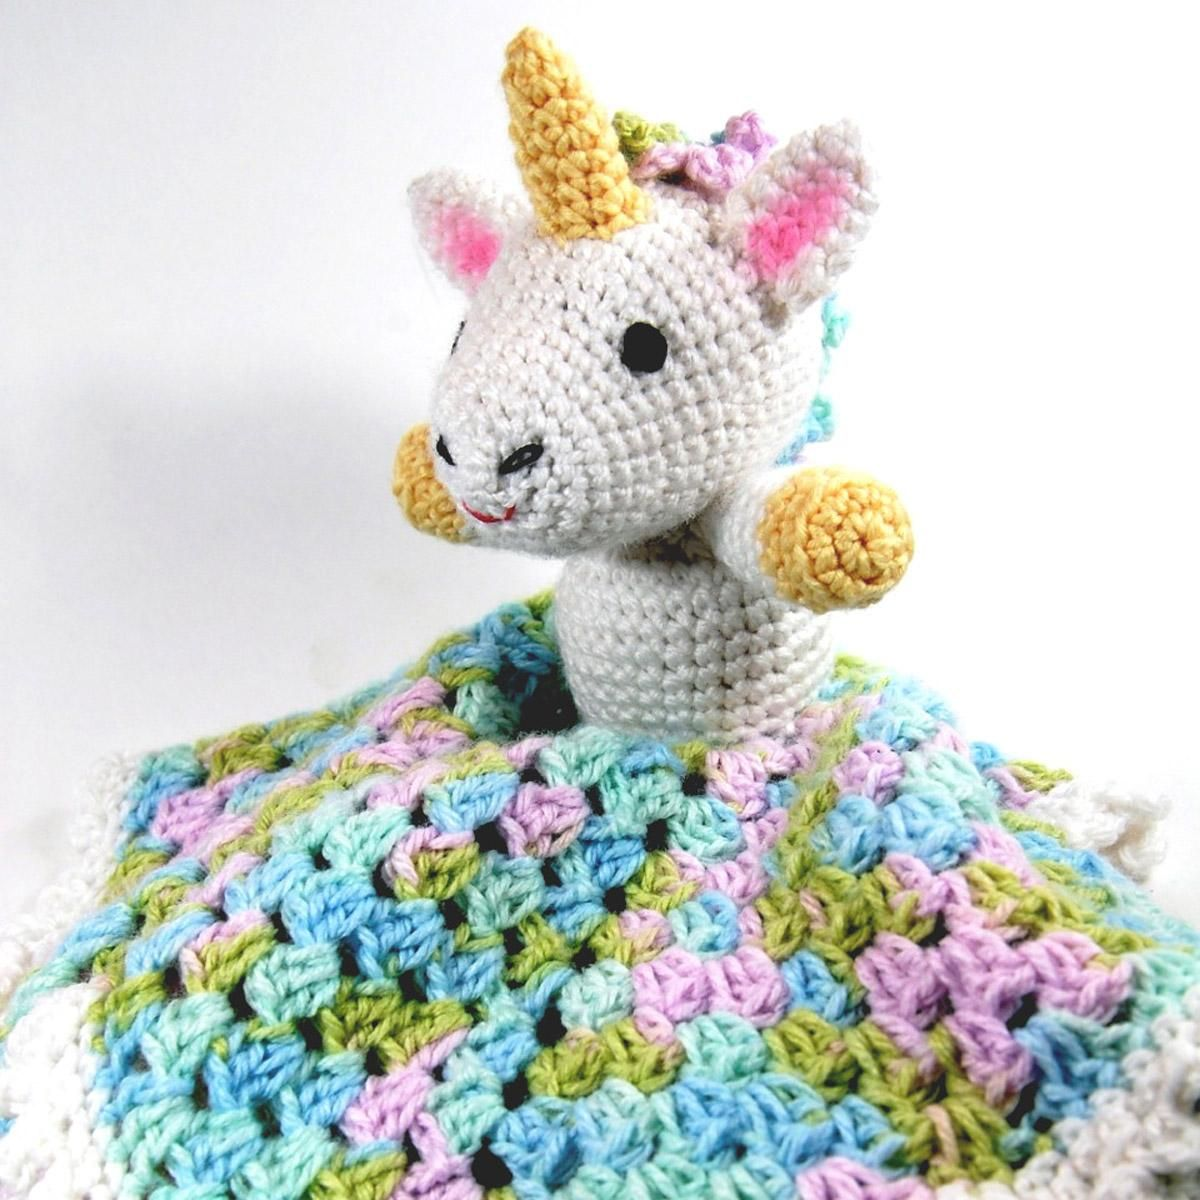 Baby Unicorn Crochet Lovey Crochet Unicorn Crochet